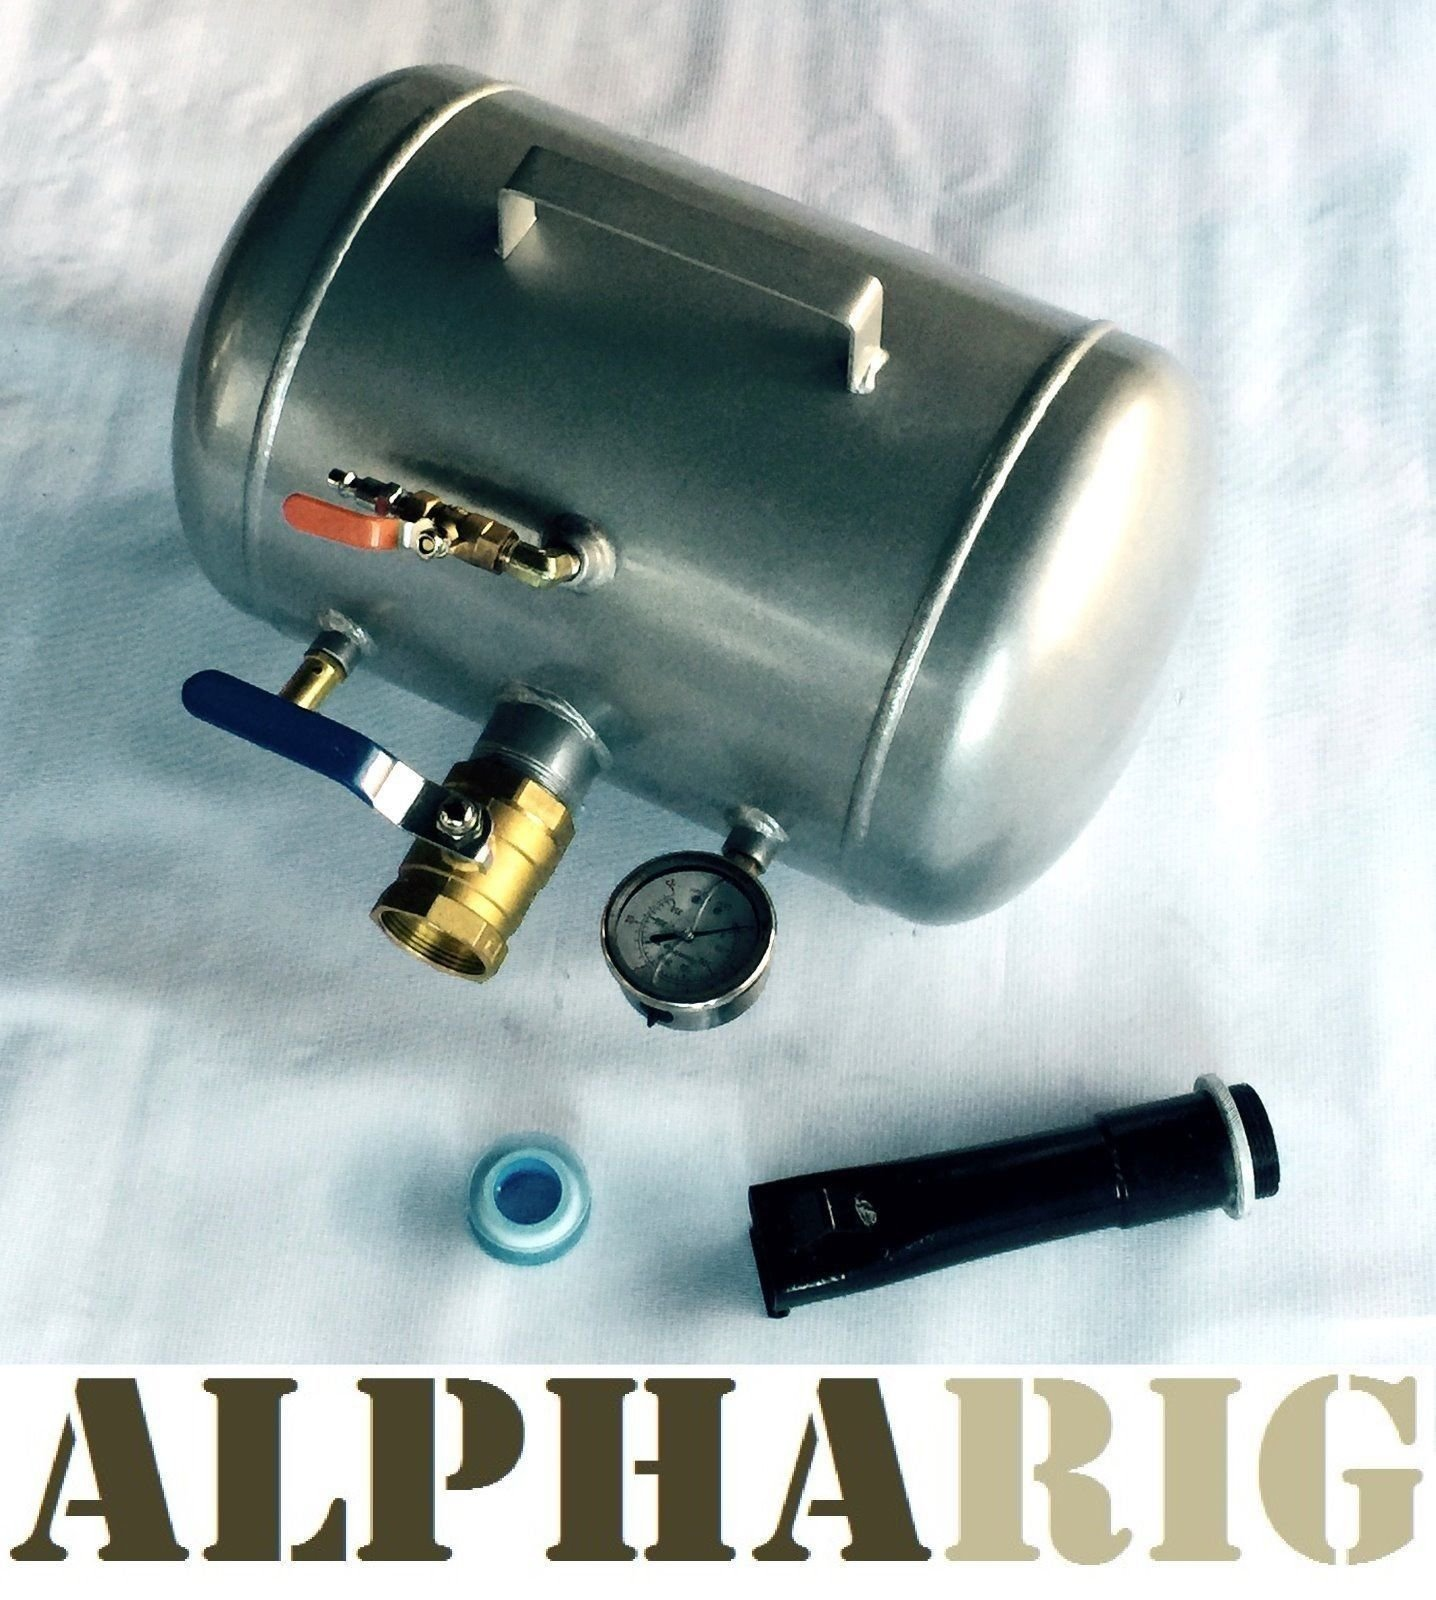 XS Power ALPHARIG TIRE Bead Seater AIR Tank 5 Gallon by XS Power